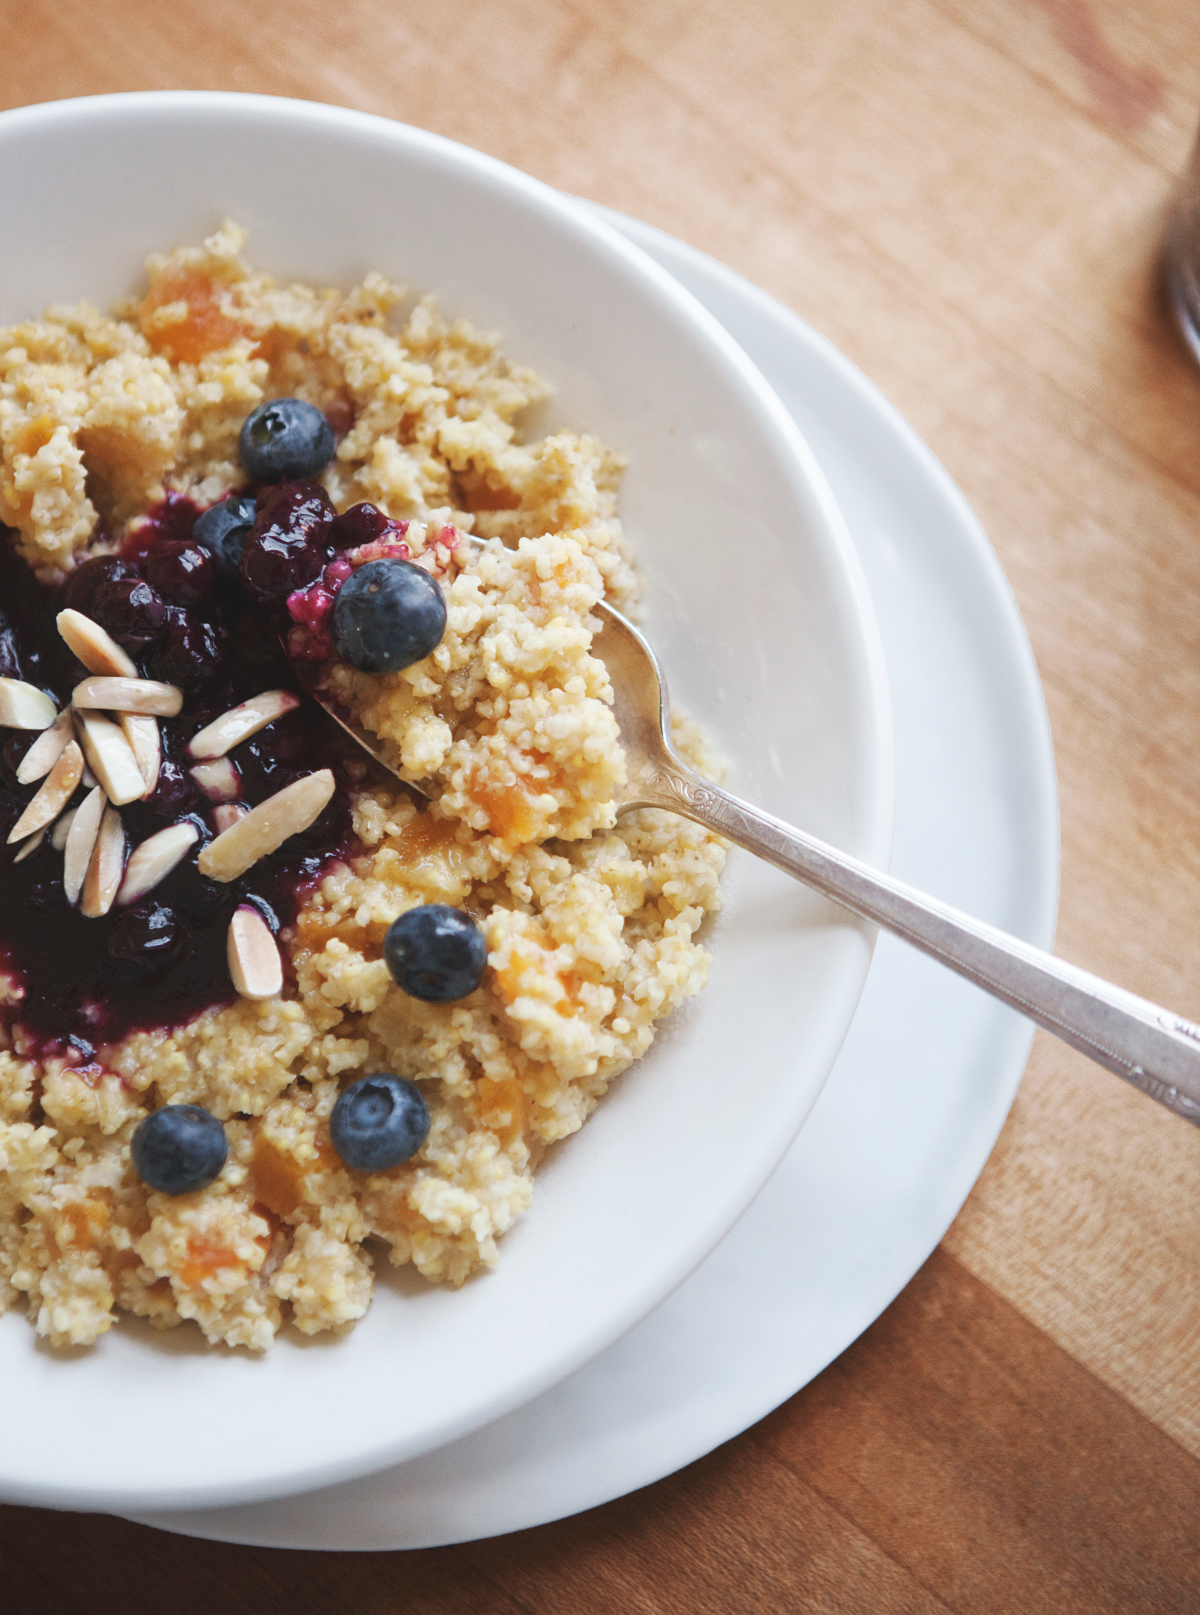 Honey-Apricot-Millet-with-Blueberry-Compote-and-Toasted-Almonds_0104.jpg